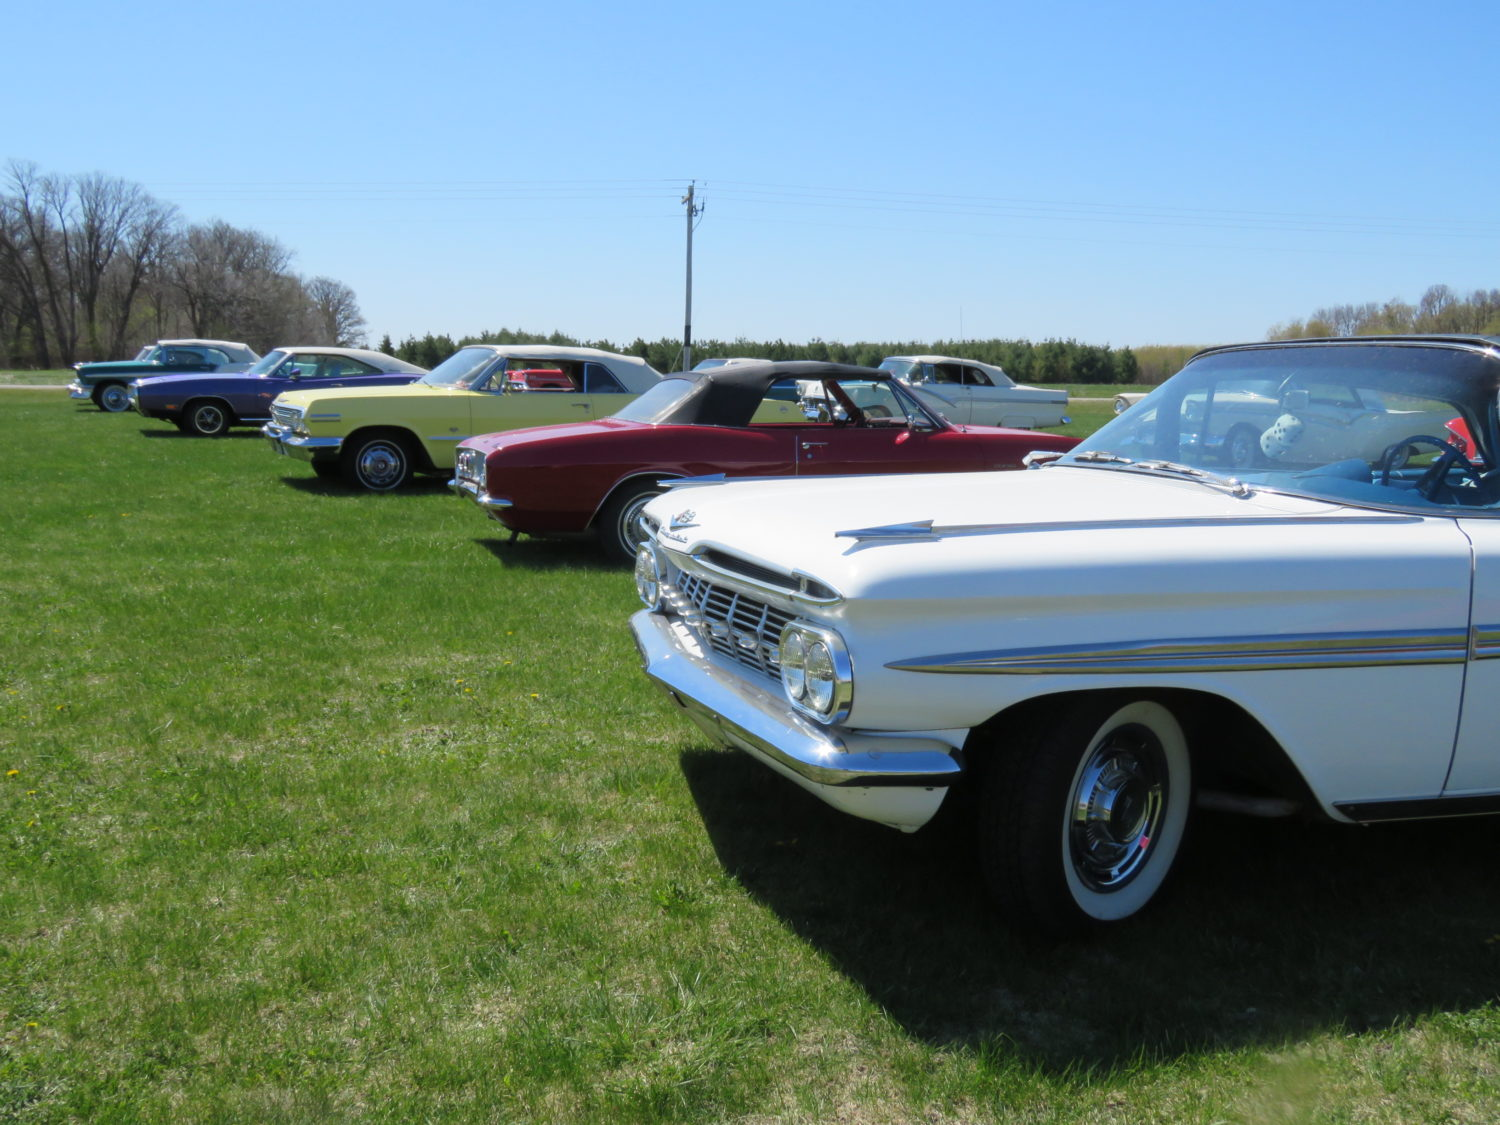 Fabulous Convertibles-Muscle- Antique Tractors & More! The Windels Collection LIVE ONSITE & Online BIdding - image 7